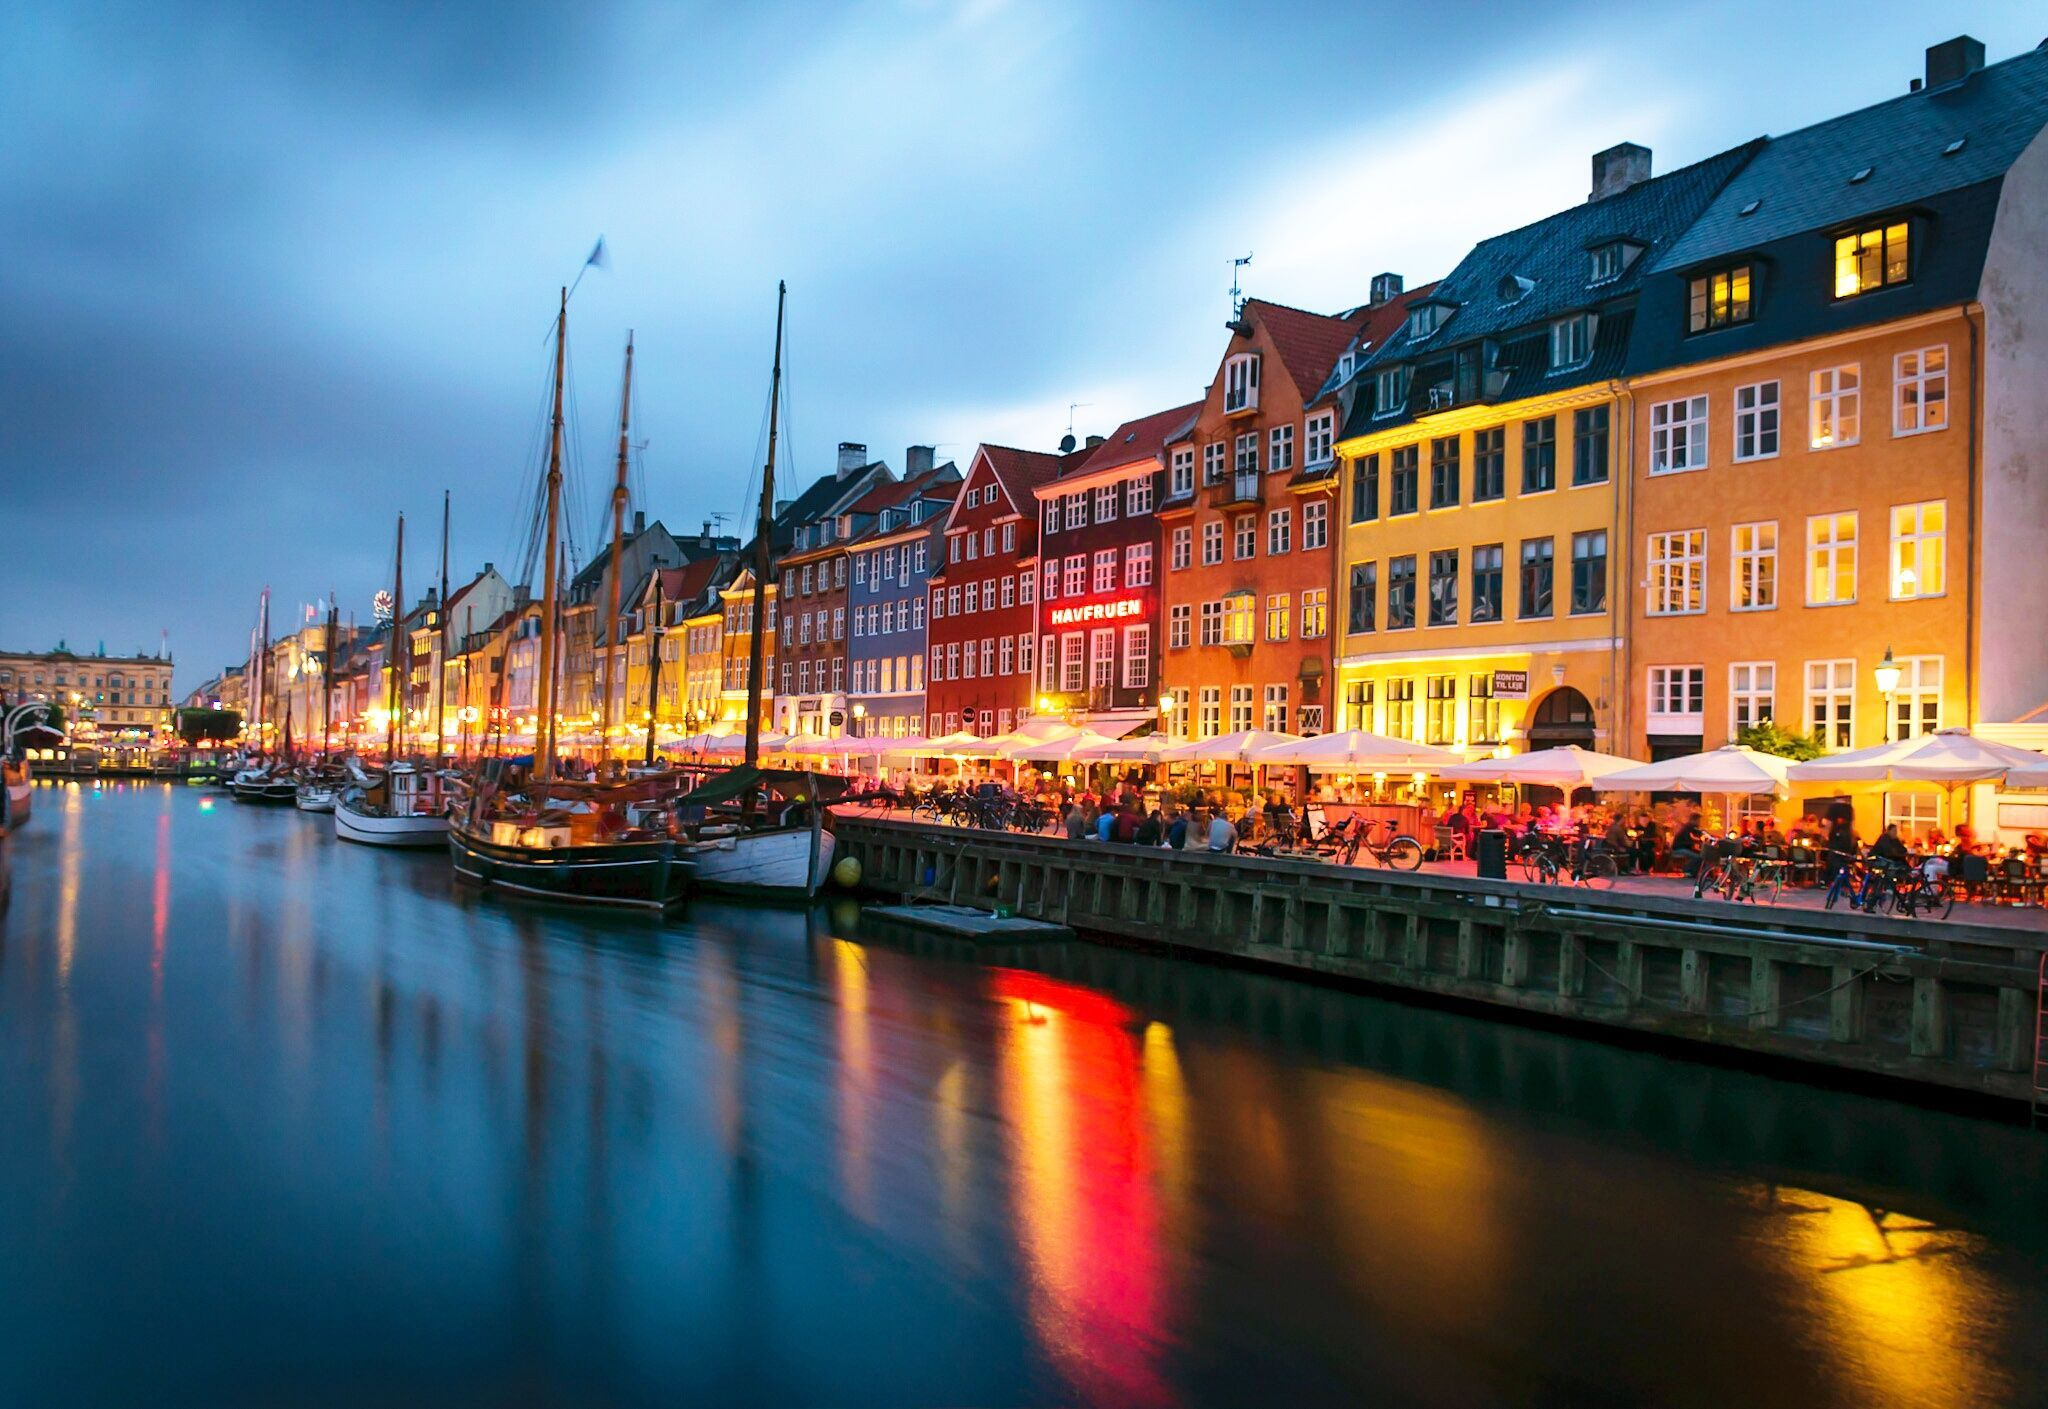 2048x1409 Nyhavn Copenhagen [5817 x 4000] | Wallpaper pc in 2019 ...